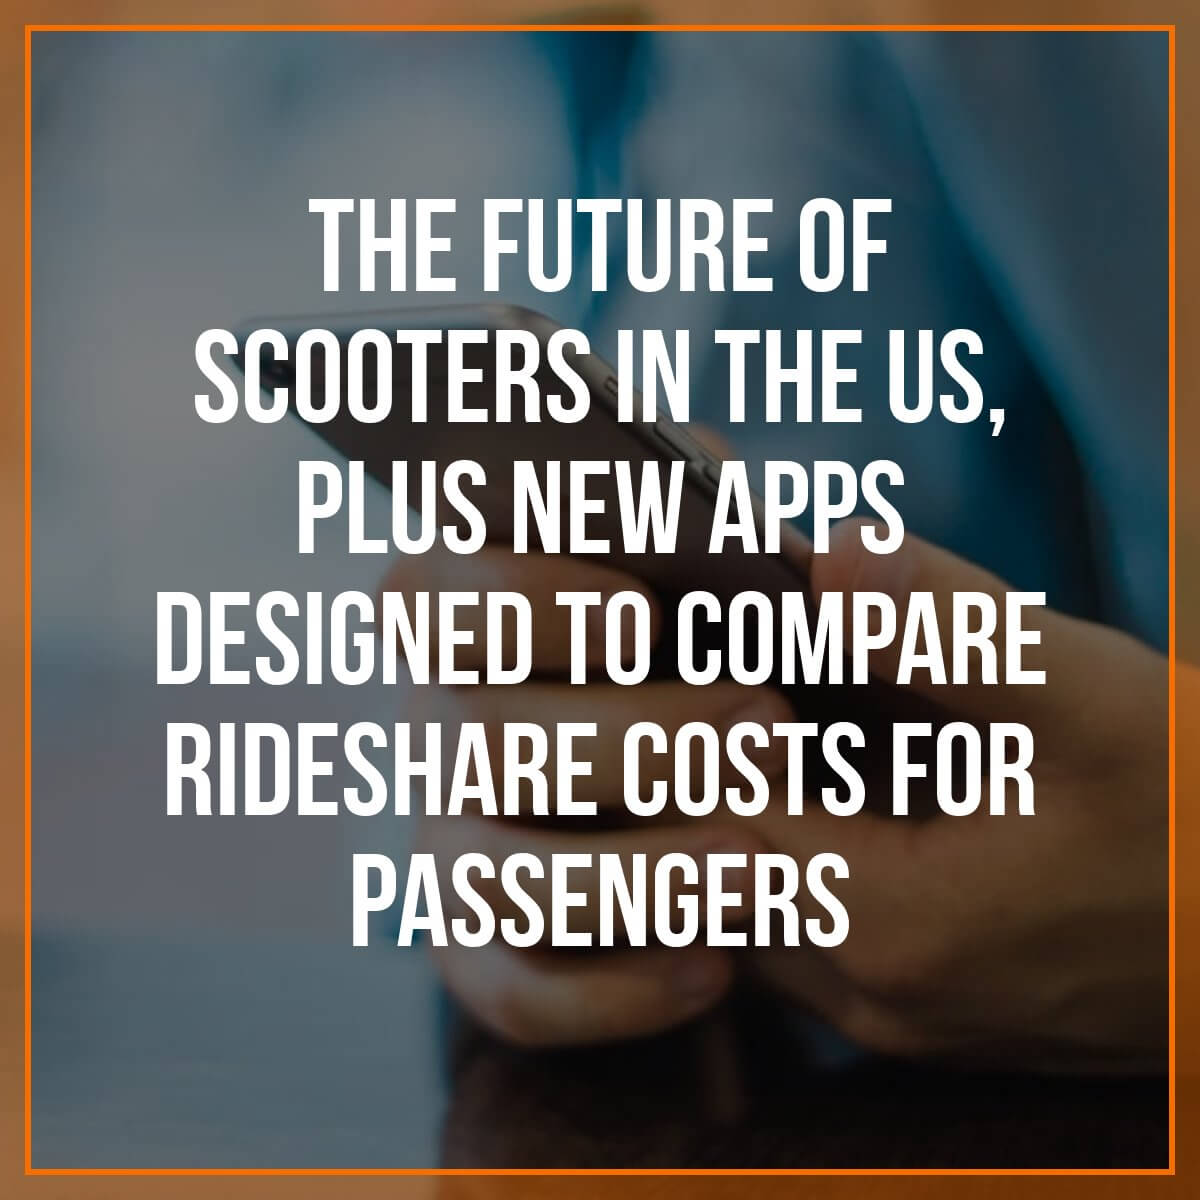 The Future of Scooters in the US, Plus New Apps for Passengers